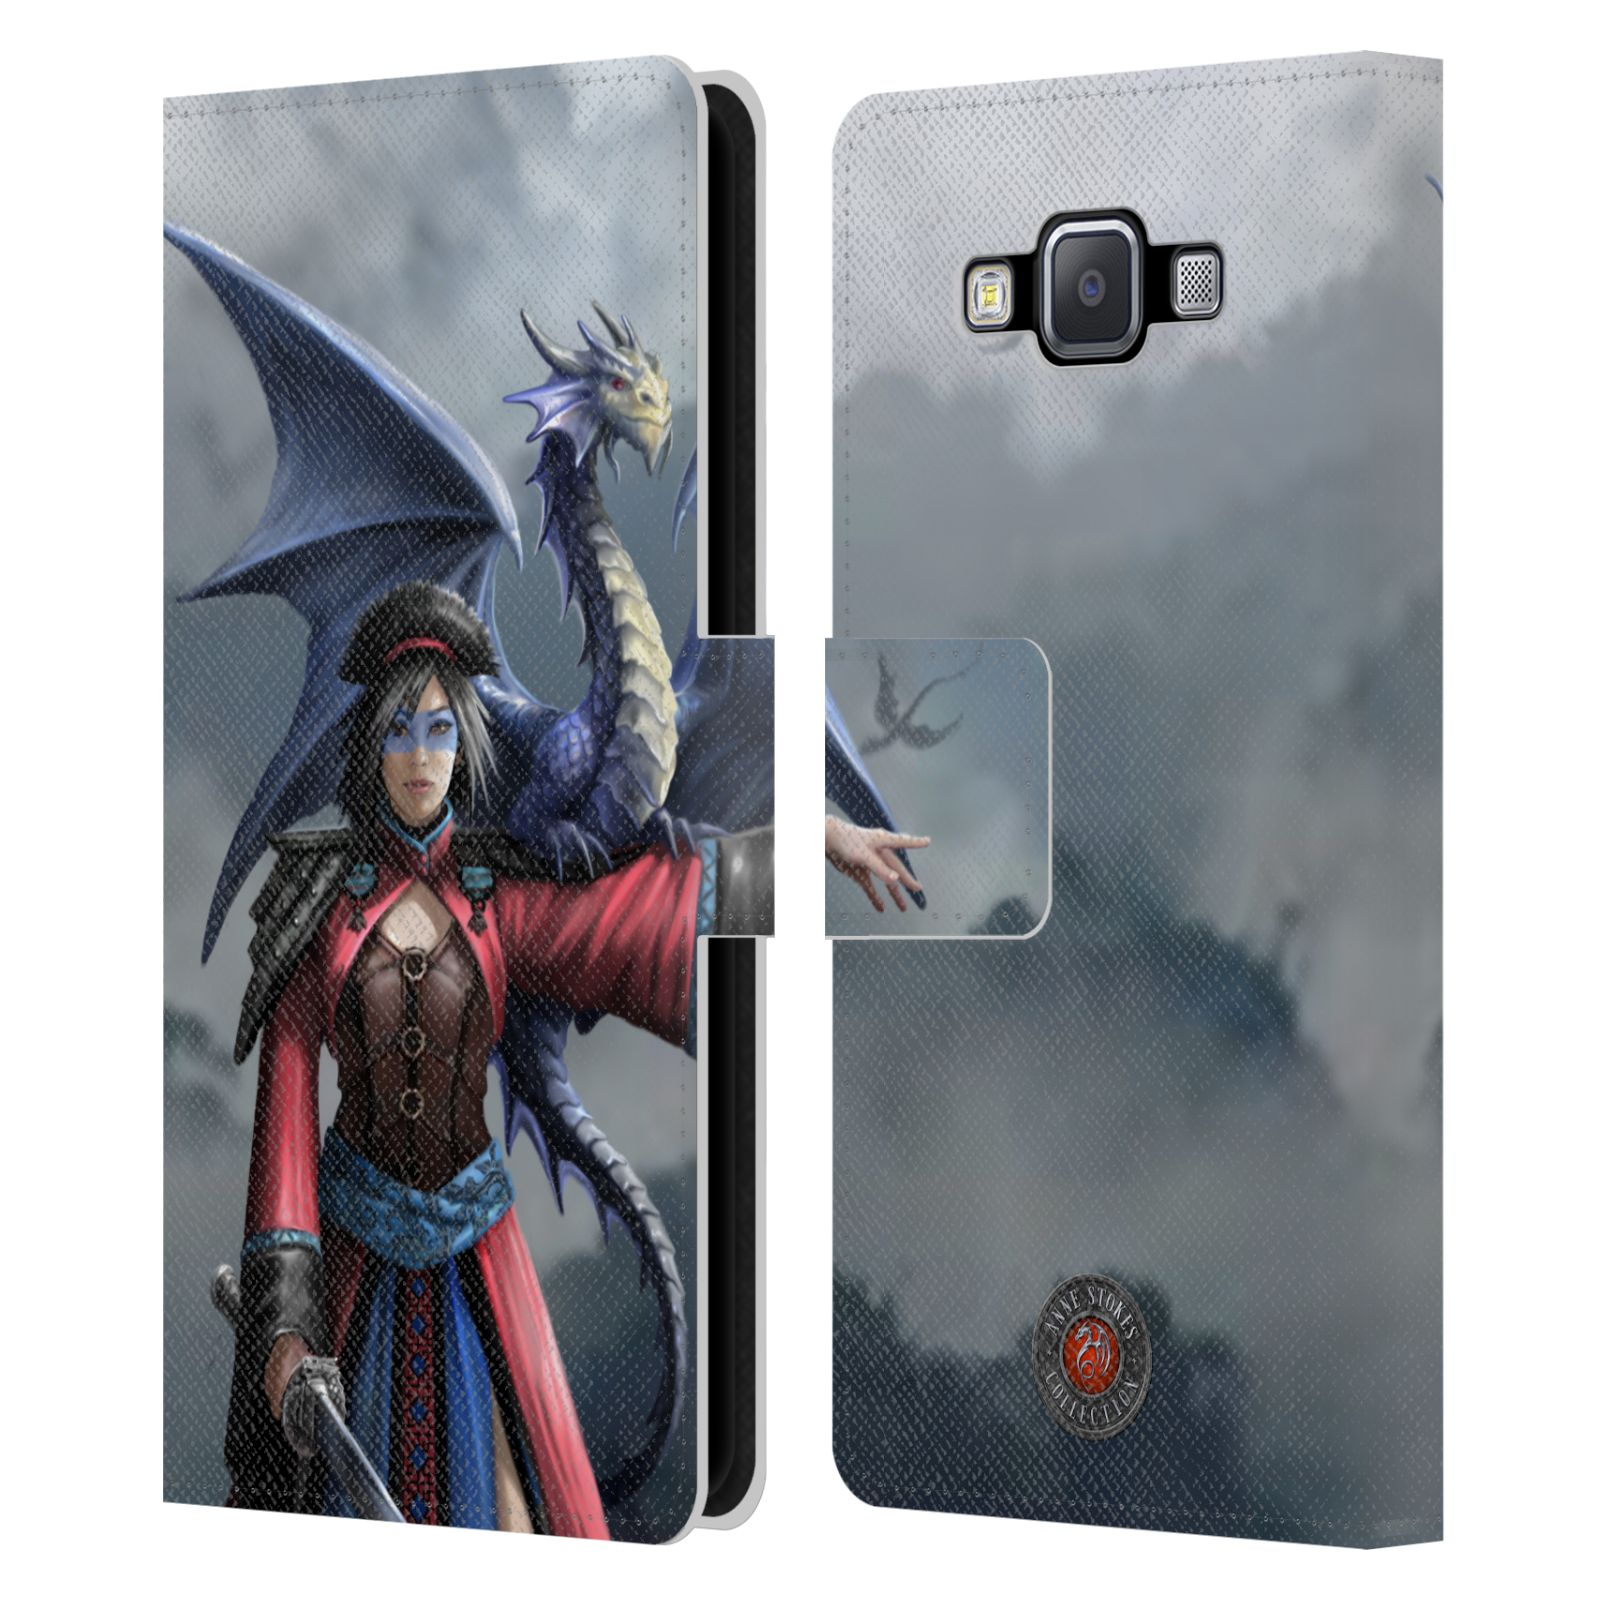 OFFICIAL-ANNE-STOKES-DRAGON-FRIENDSHIP-2-LEATHER-BOOK-CASE-FOR-SAMSUNG-PHONES-2